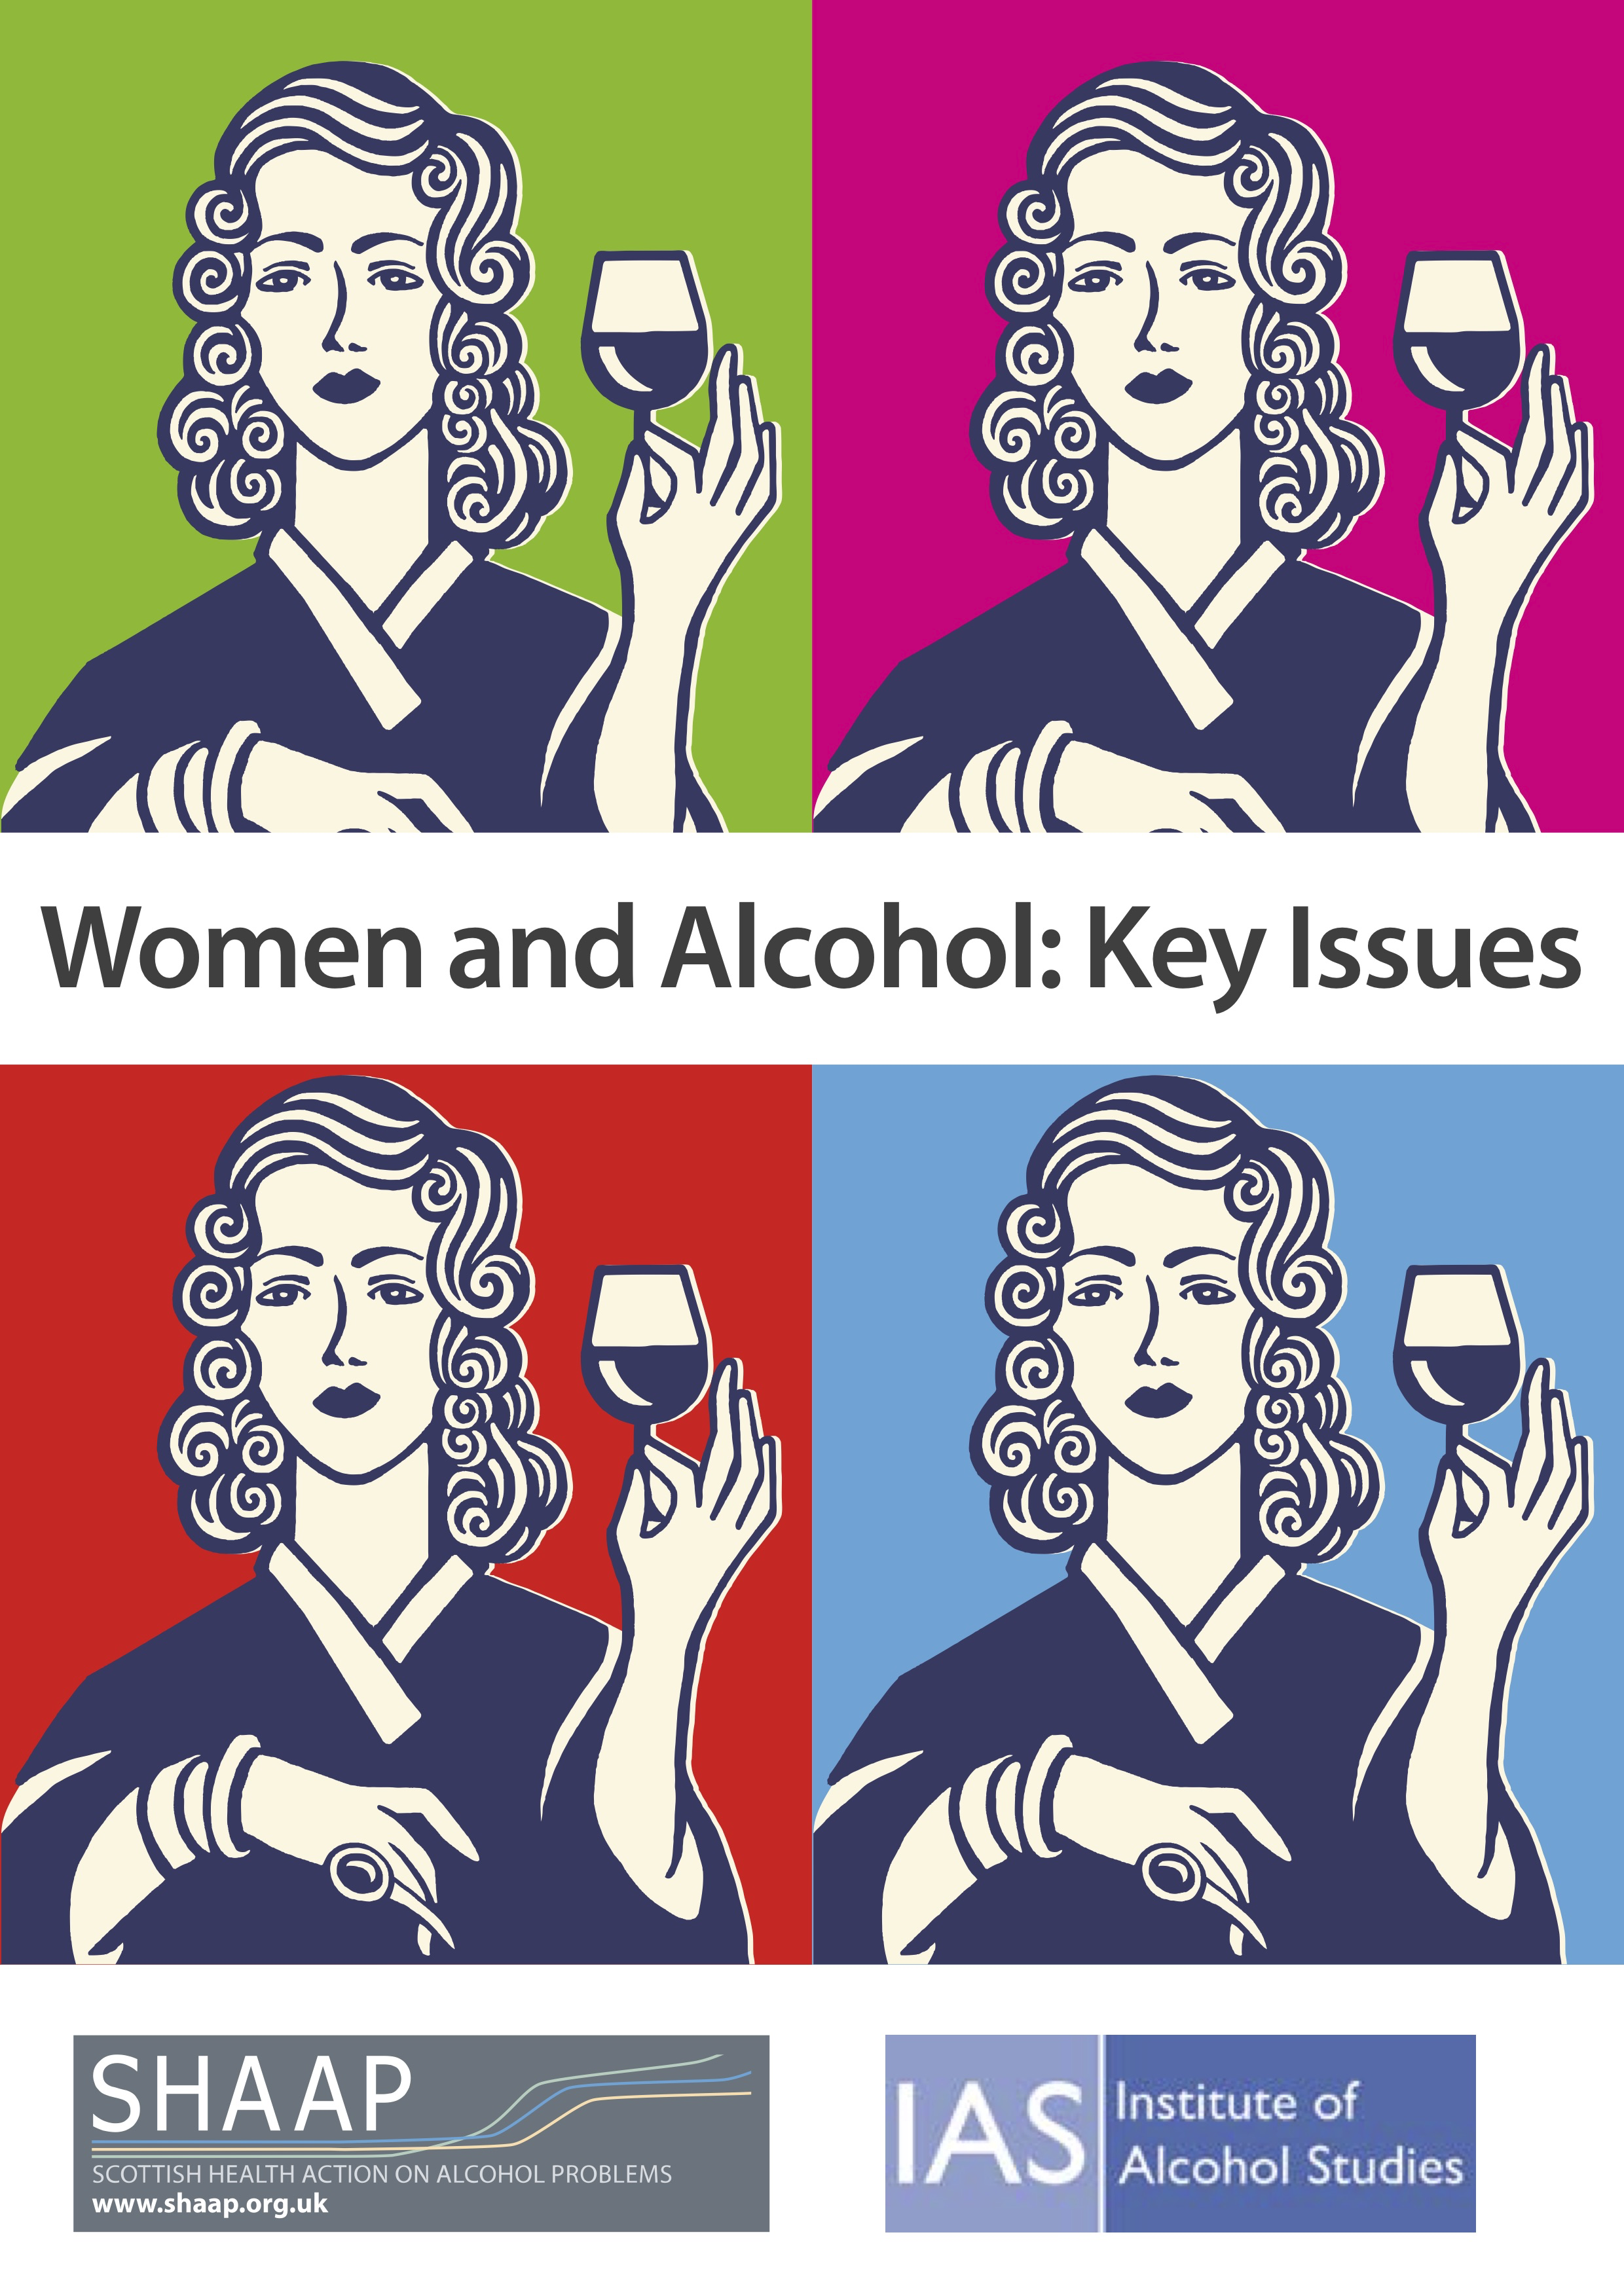 Women and alcohol: Key issues